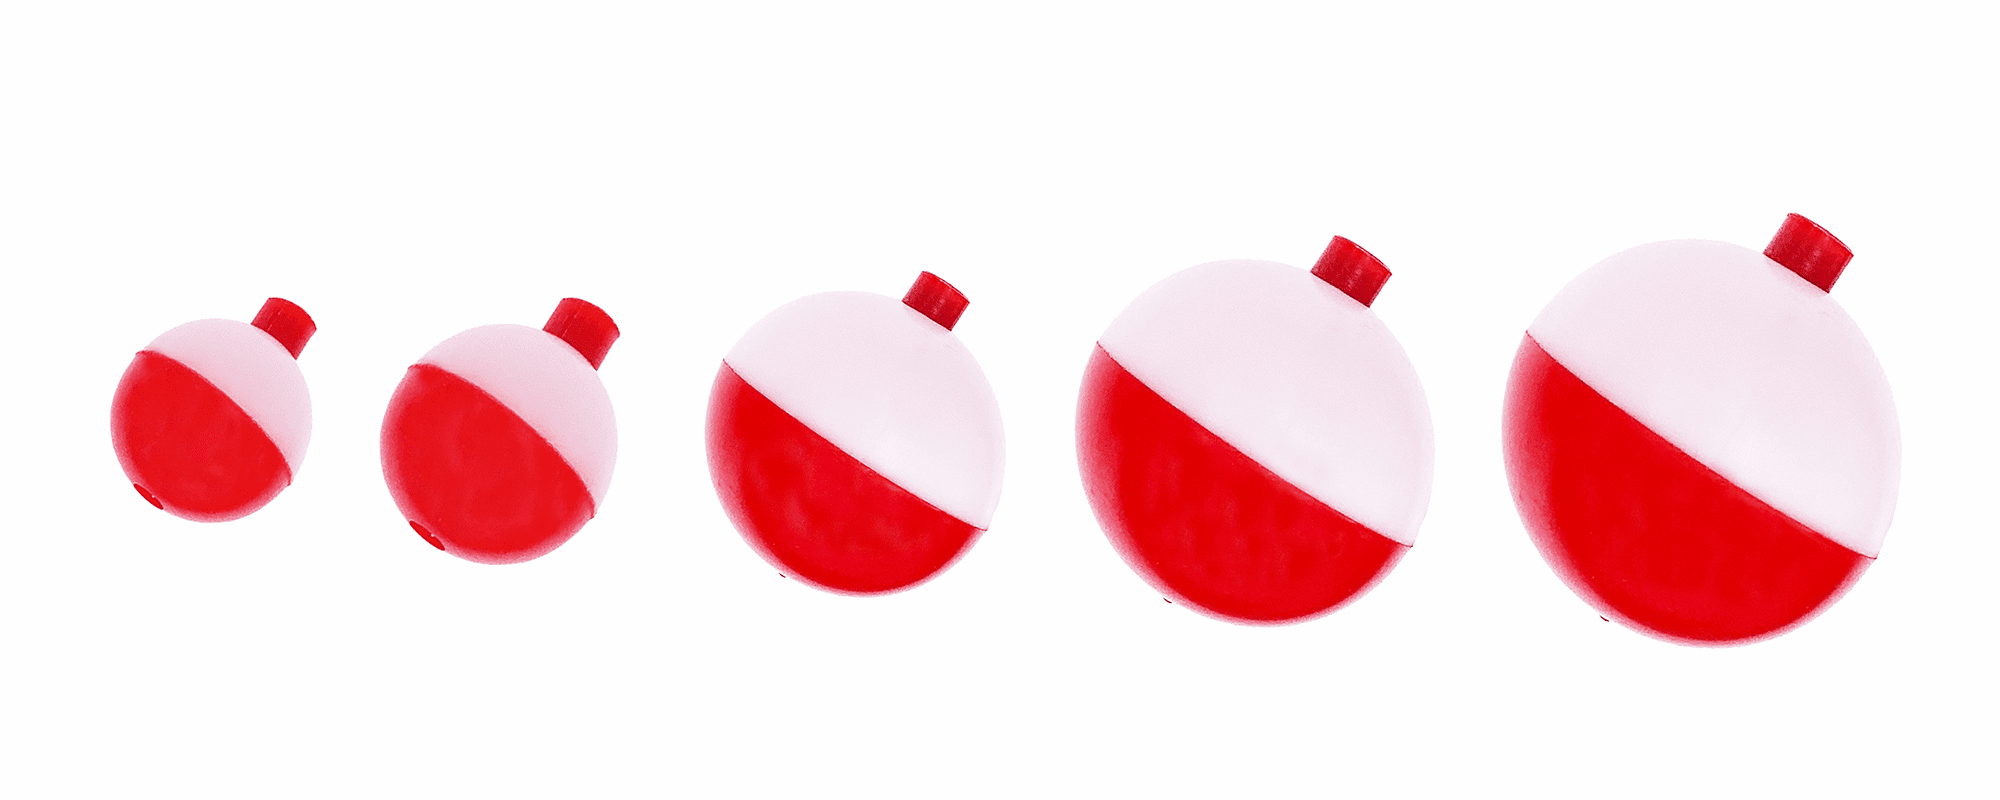 Red & White Floats